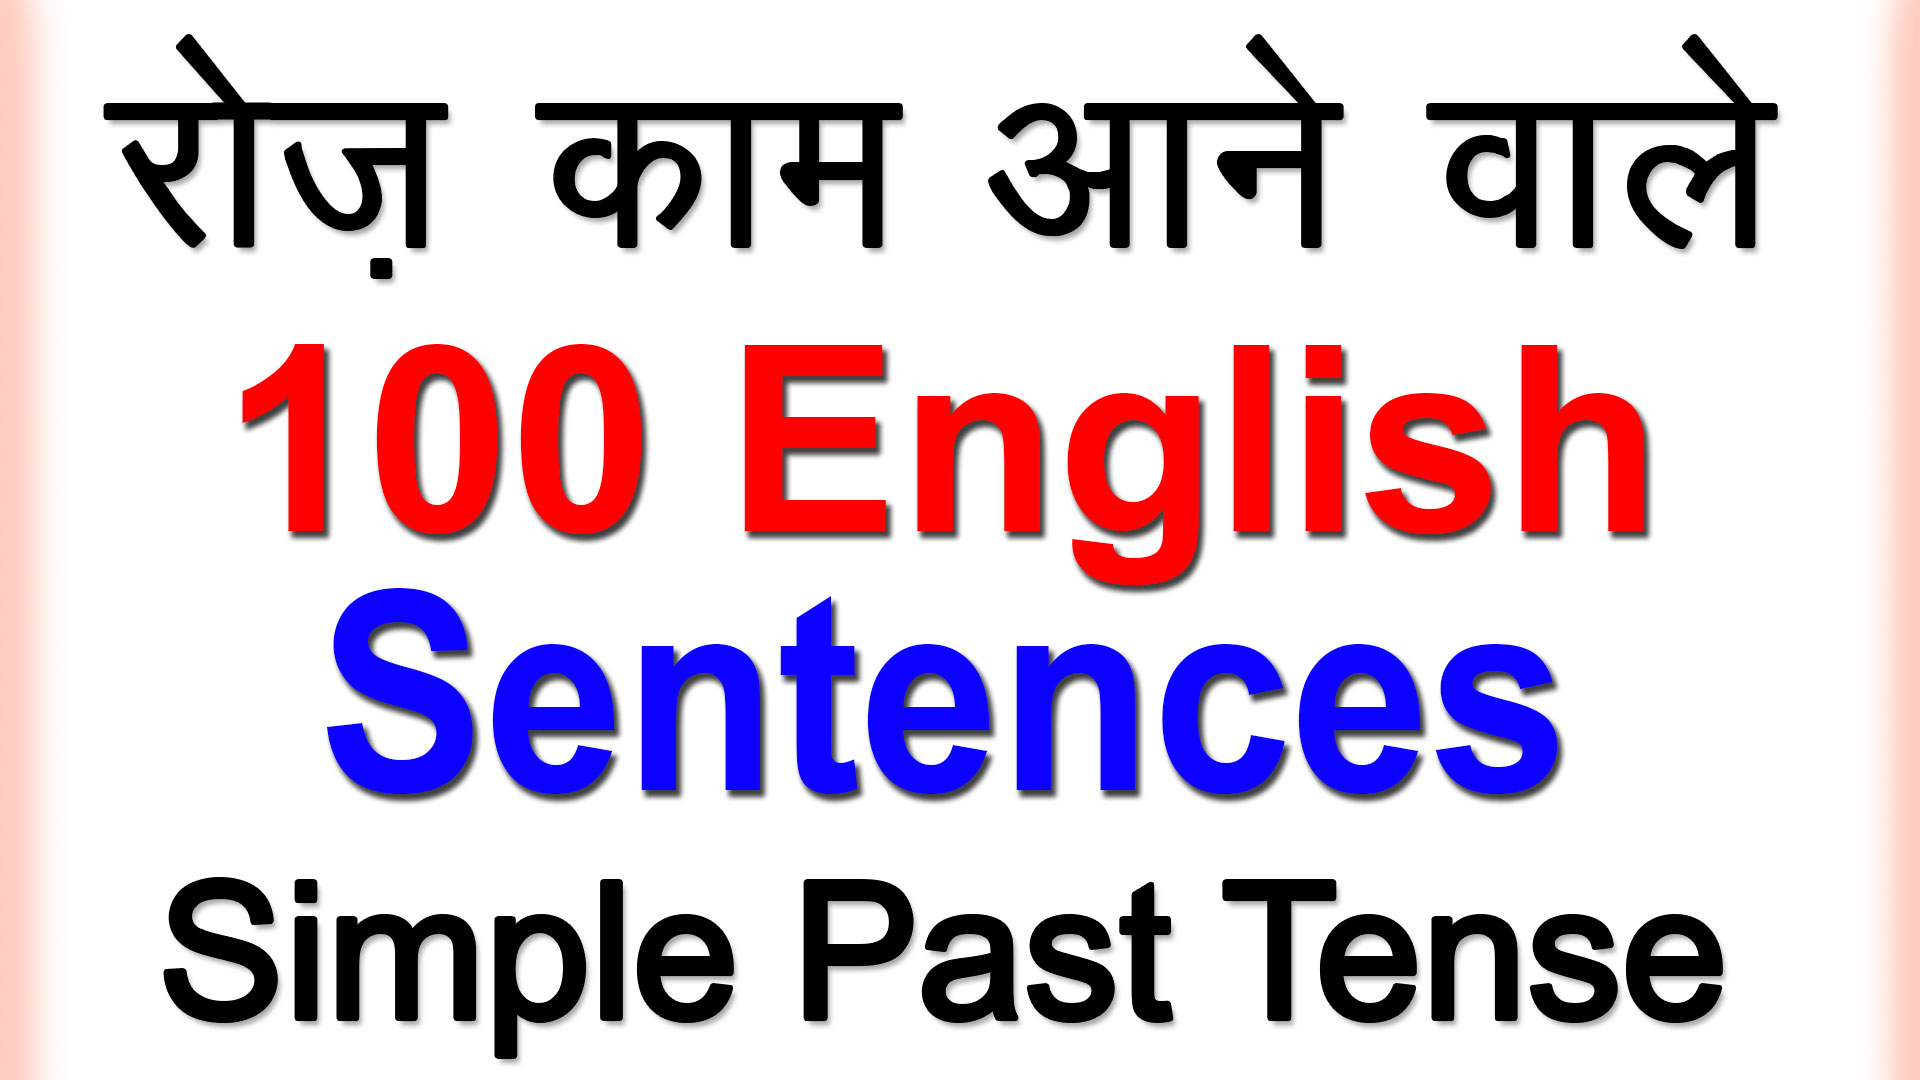 Simple Past Tense Spoken English lesson through Hindi